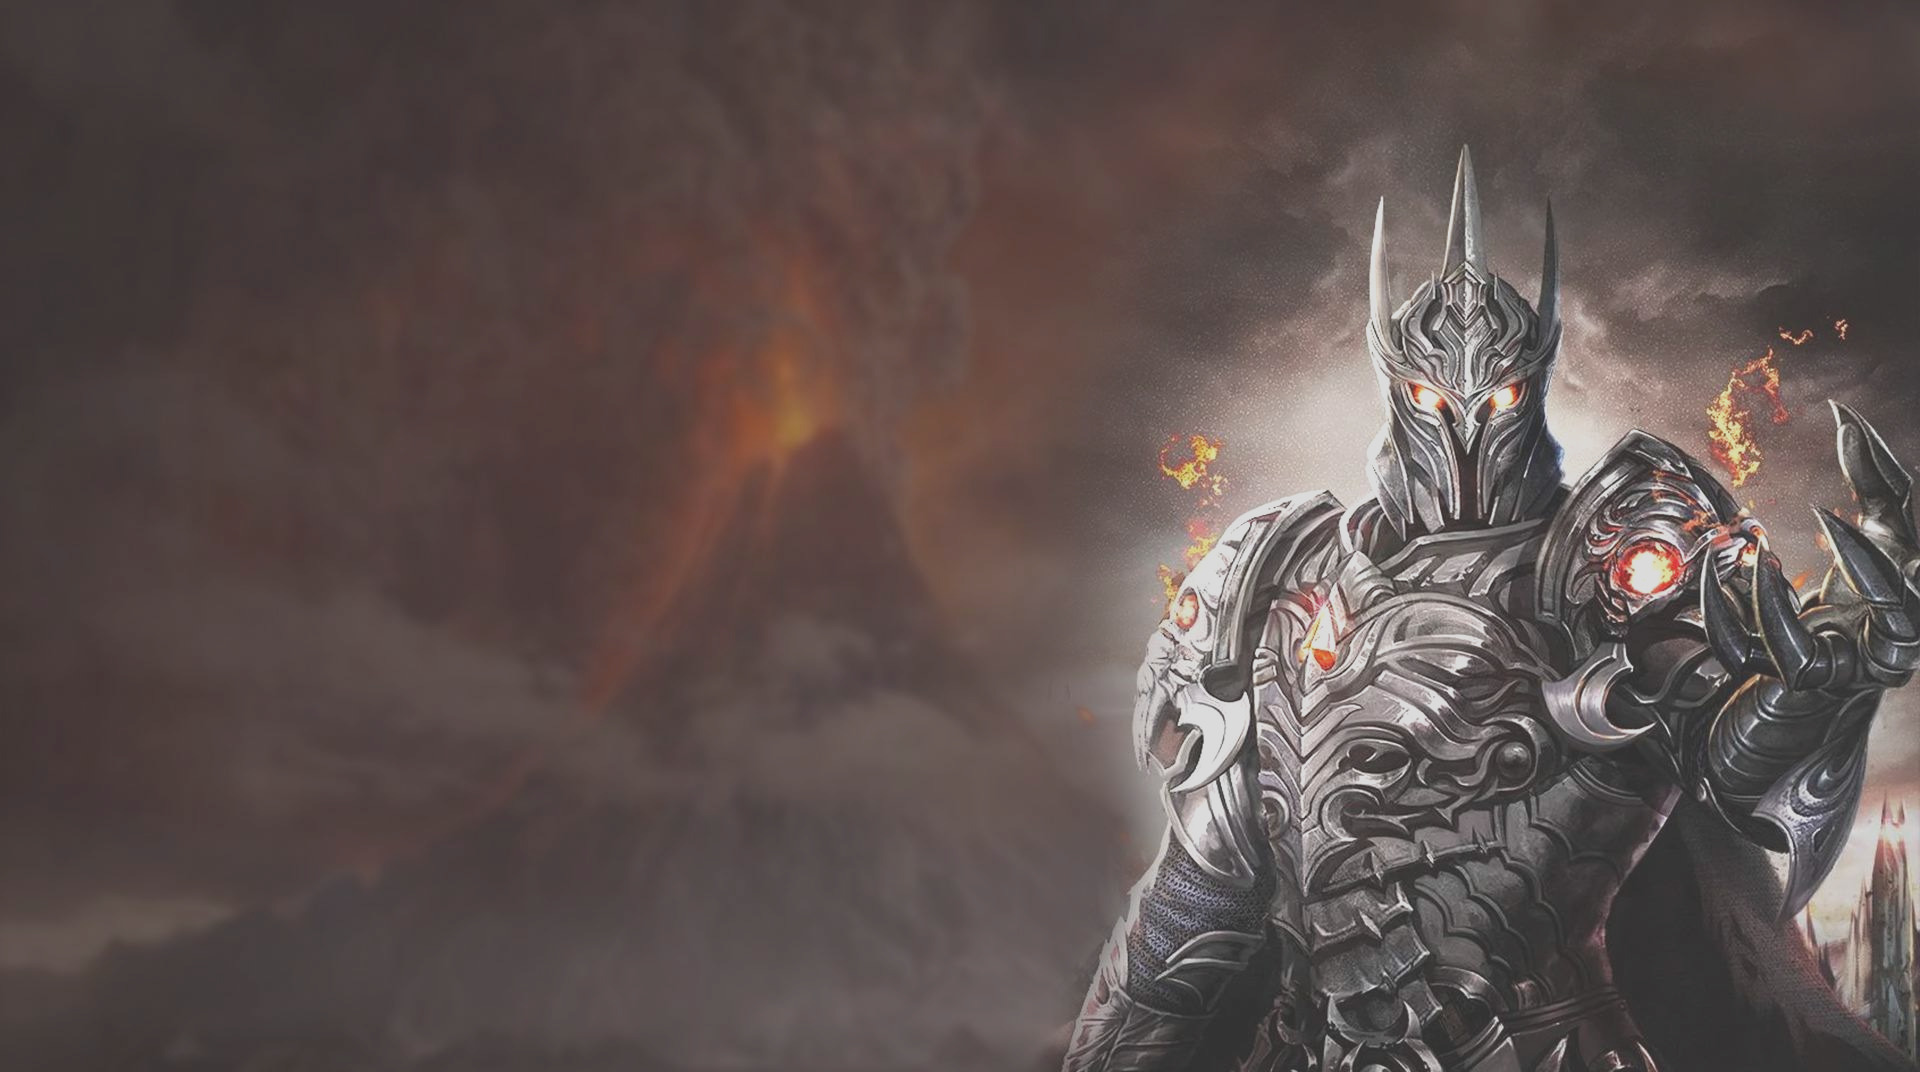 second age war of dark lord on pc